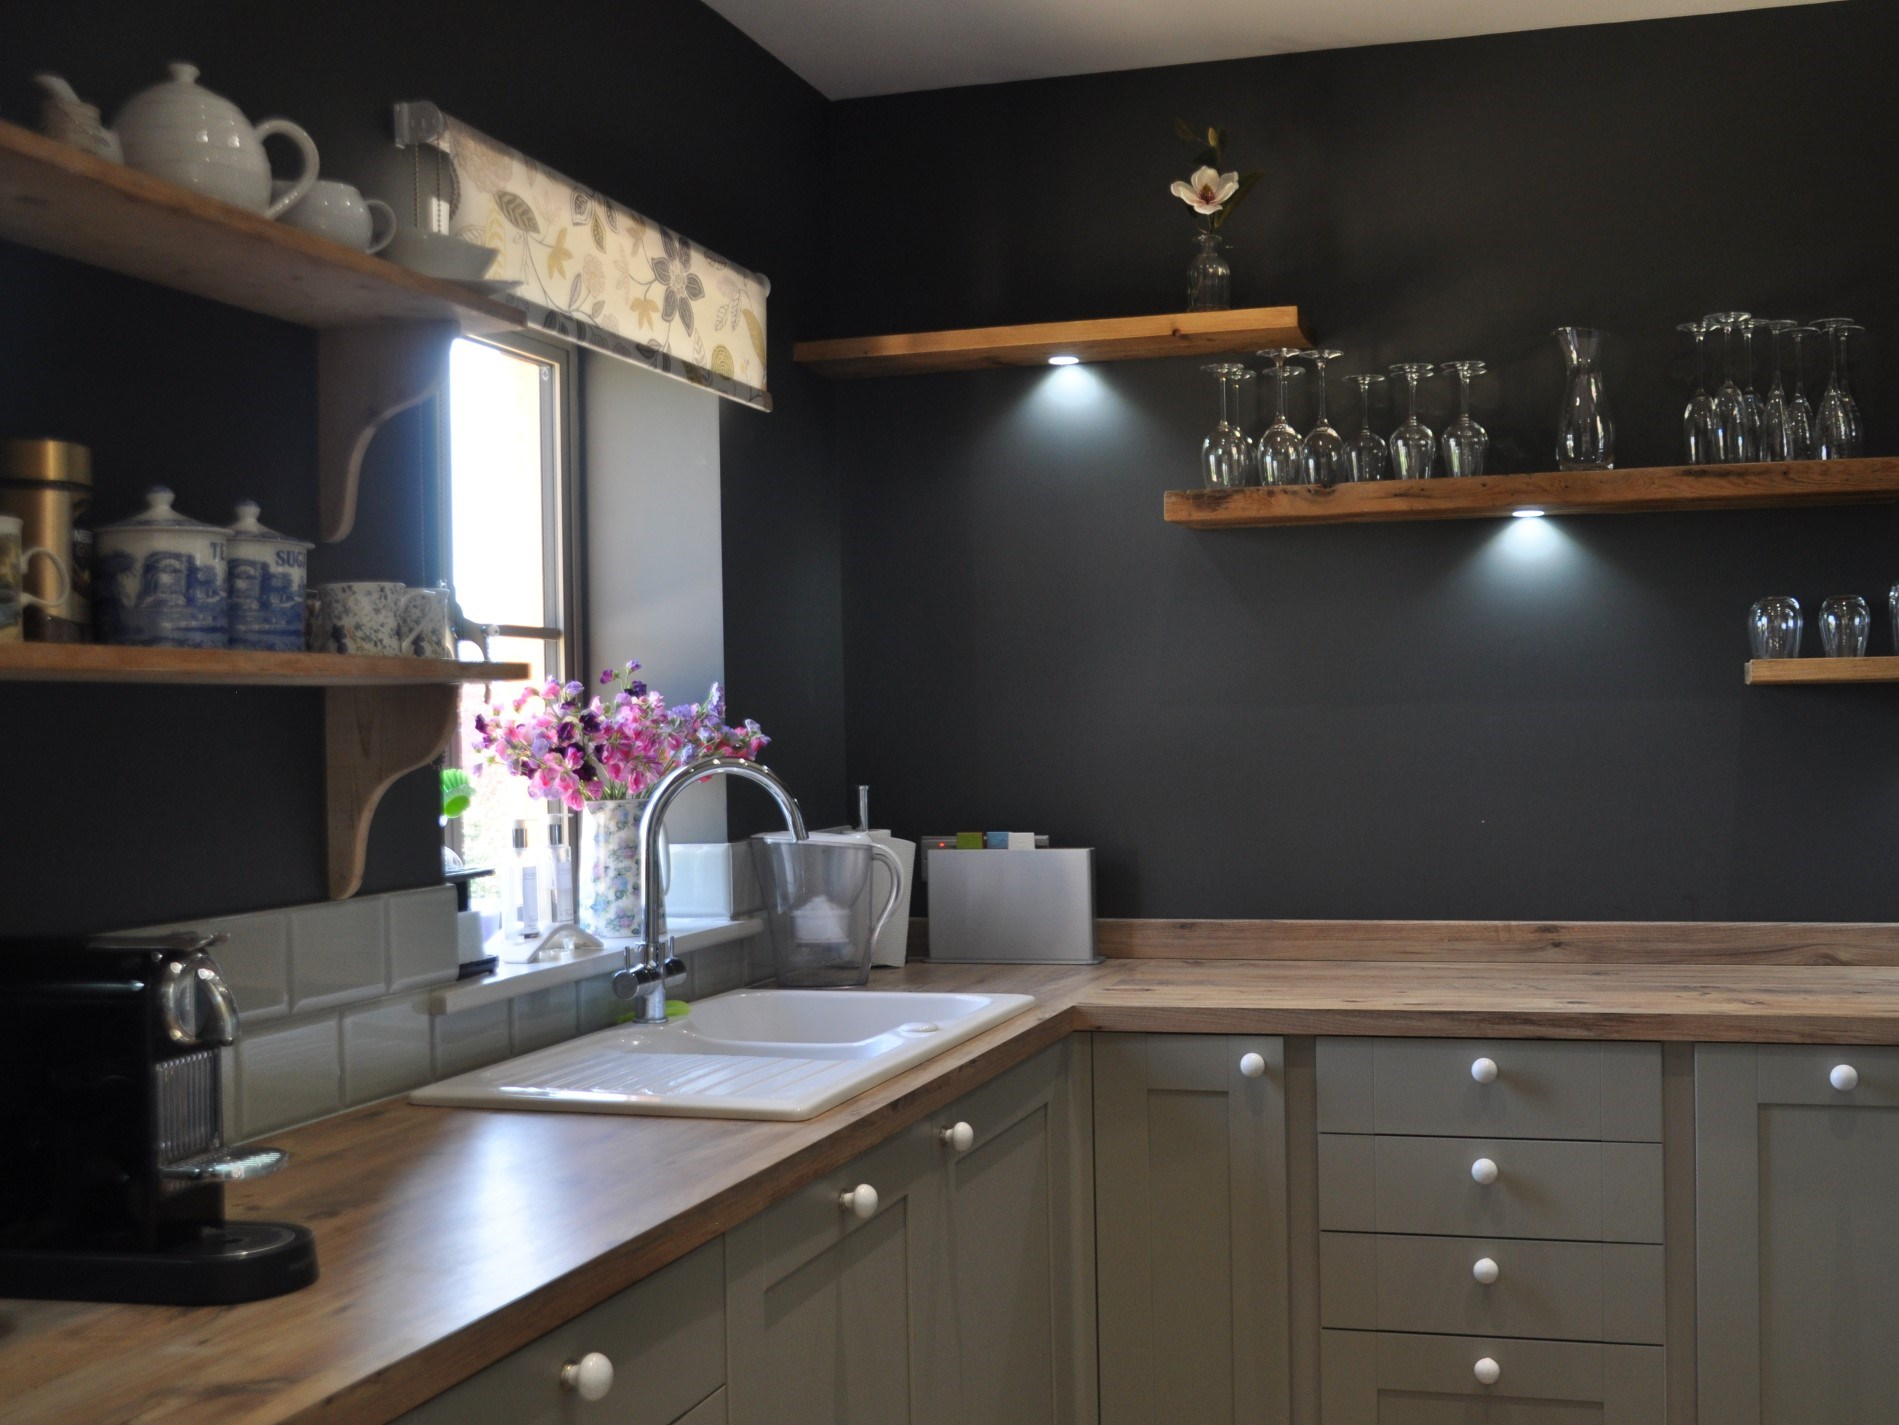 The hand crafted shelving enhances the style of this well-equipped kitchen